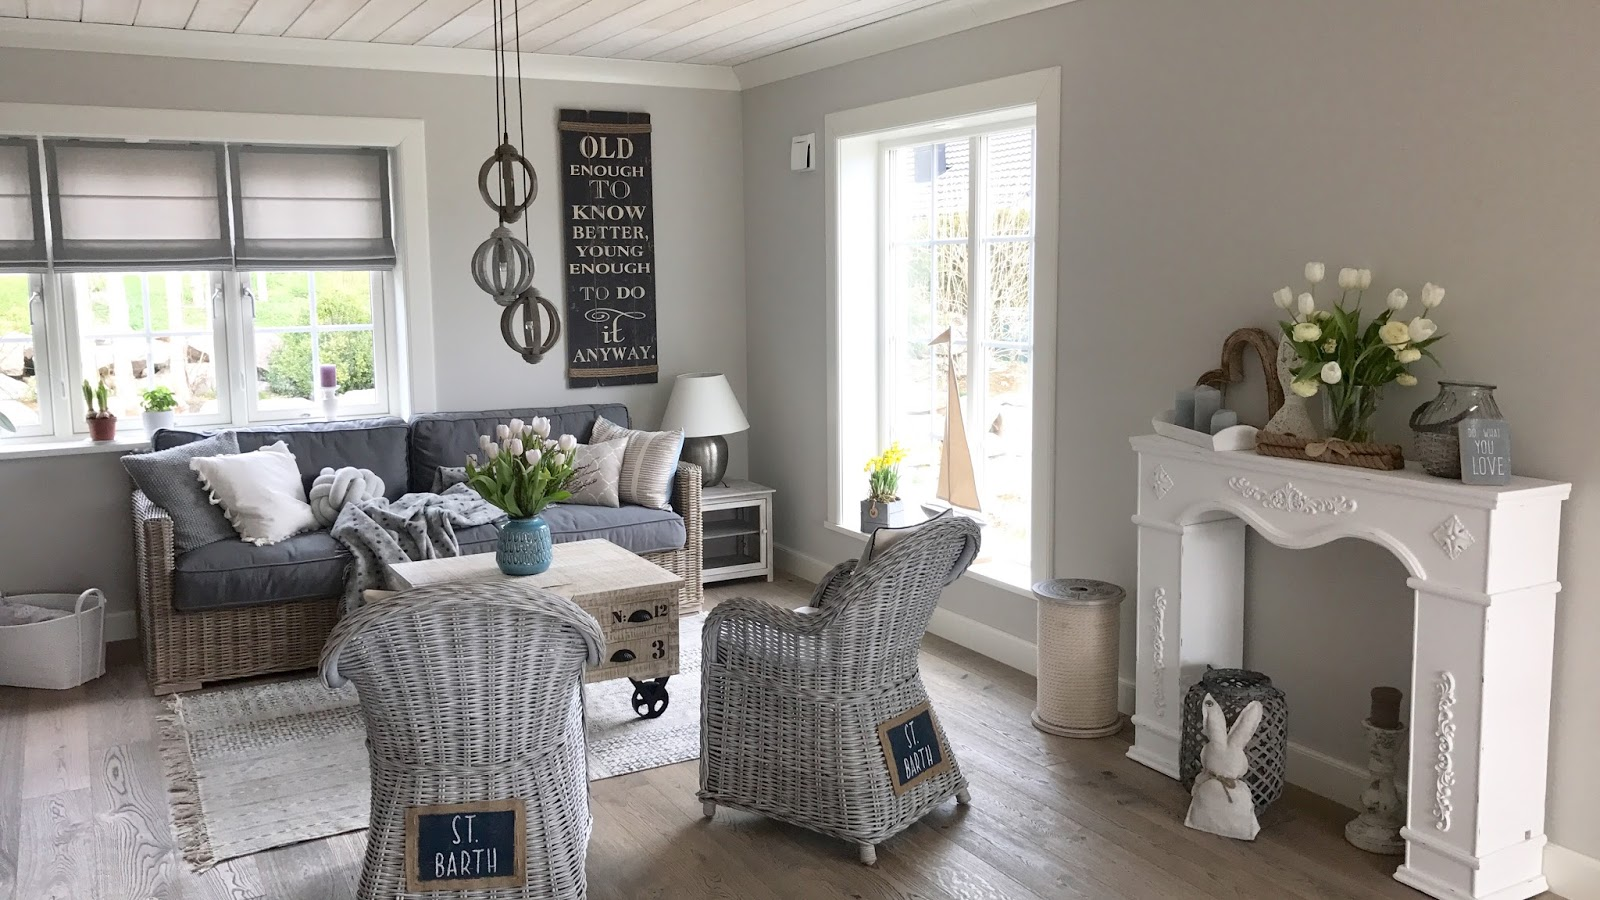 Couchtisch Grau Gold Sitzecke Im Hamptons Style! - Beachhouse Living